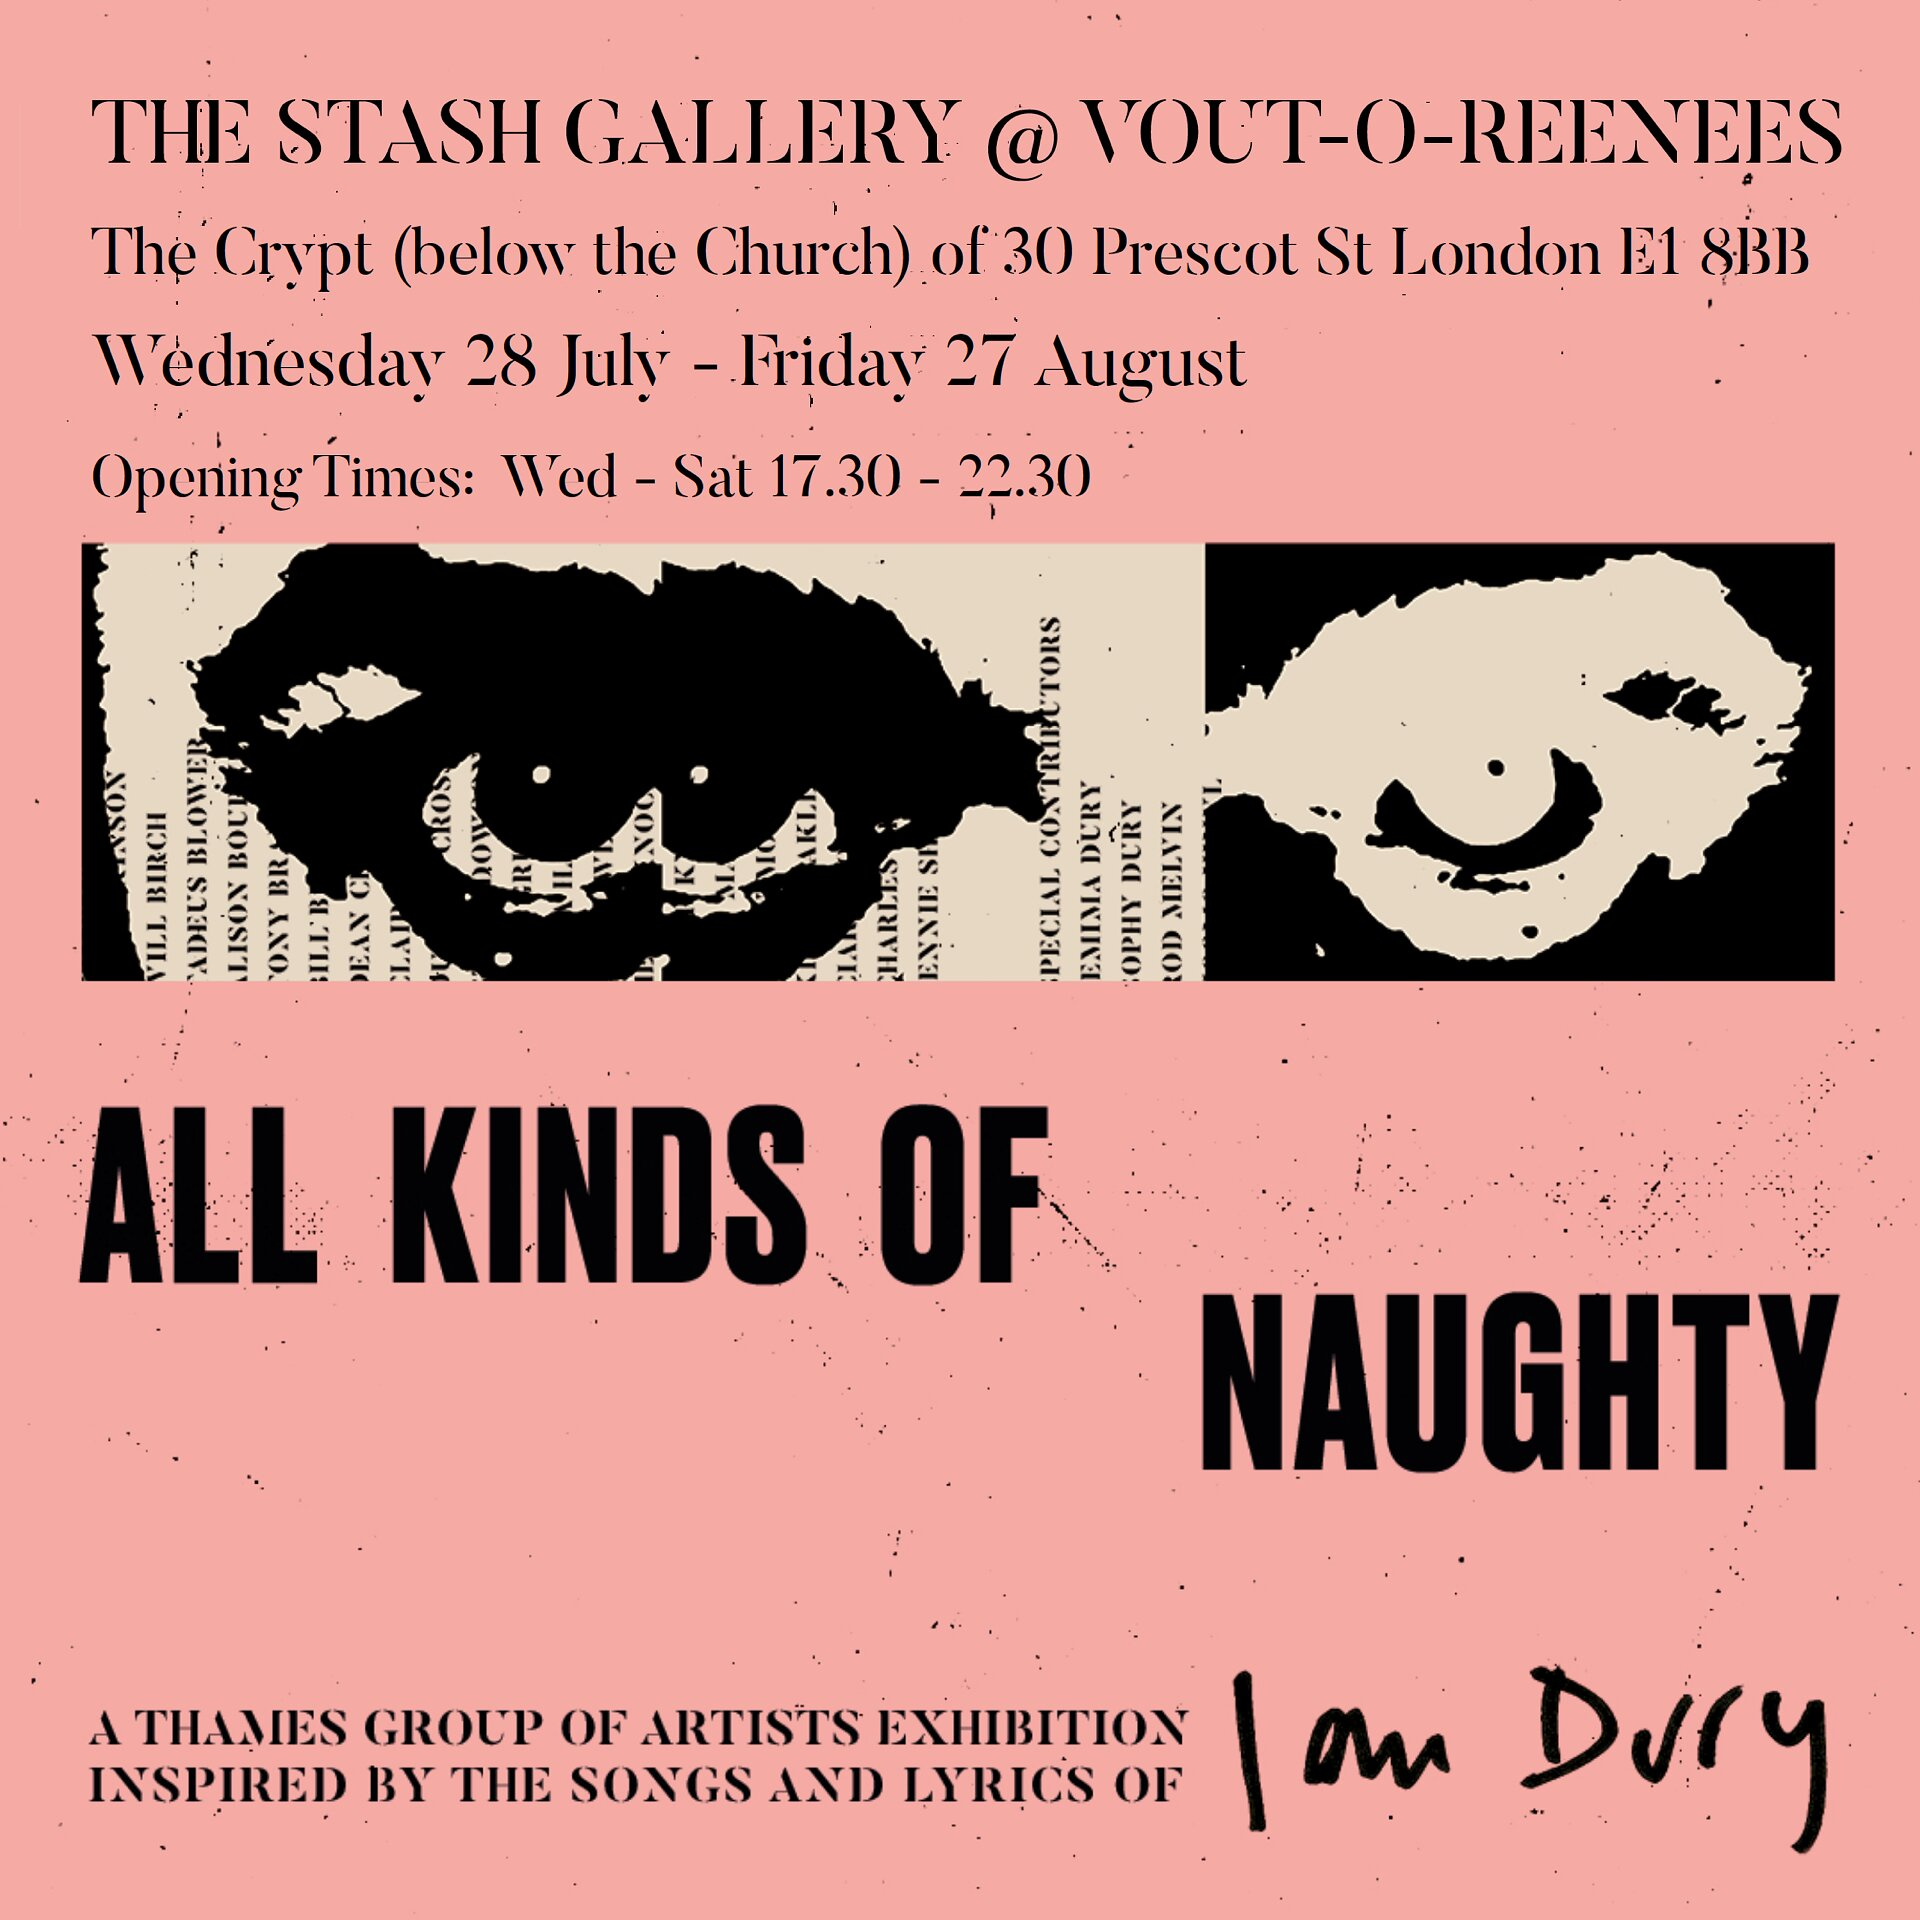 All Kinds Of Naughty: The Stash Gallery London